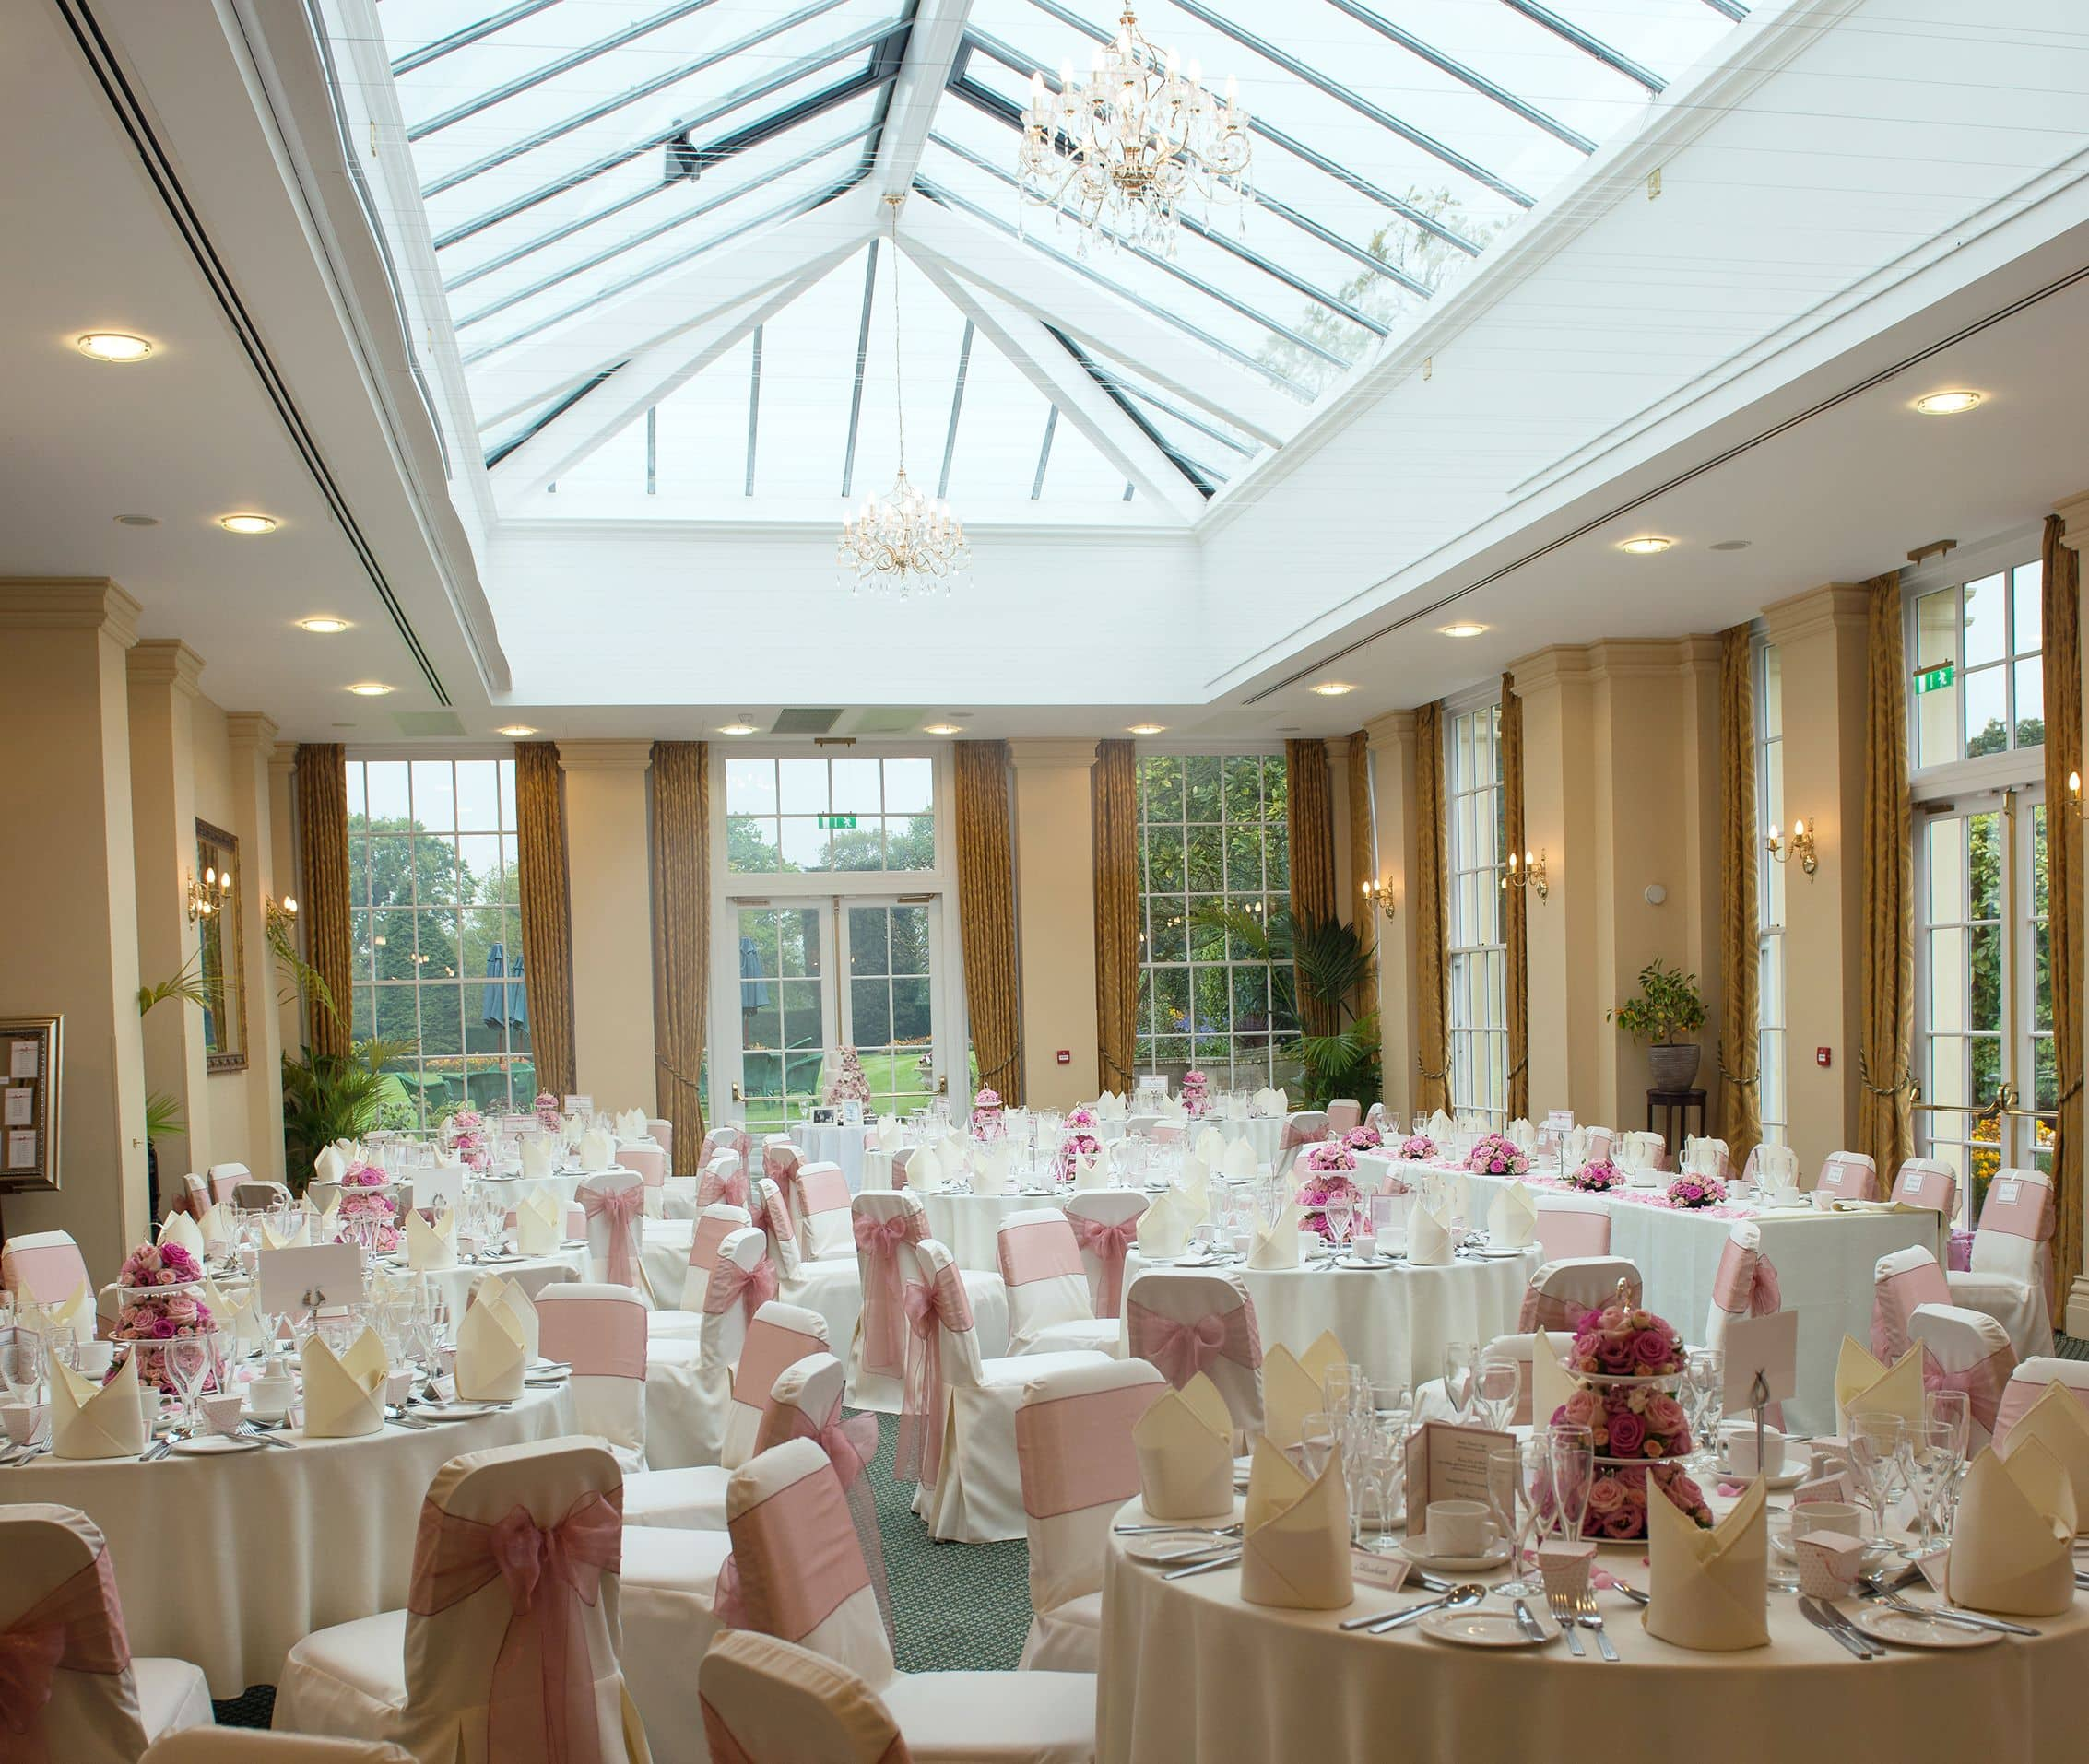 Reception Ceremony Hall: The Orangery, Perfect For Your Wedding Reception Drinks